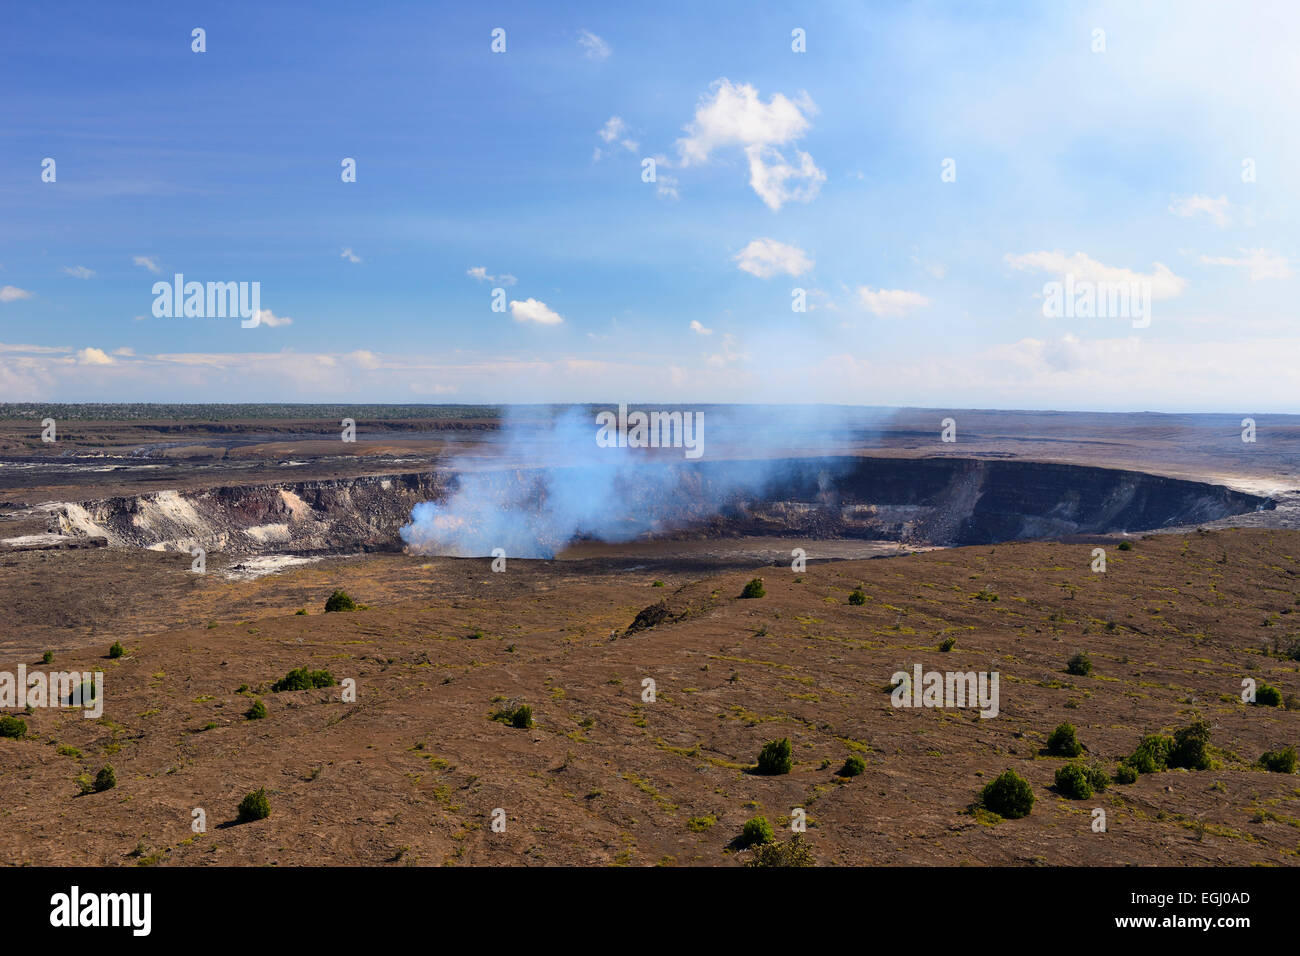 Halema'uma'u crater from Kilauea Overlook - Volcanoes National Park, Big Island, Hawaii, USA - Stock Image